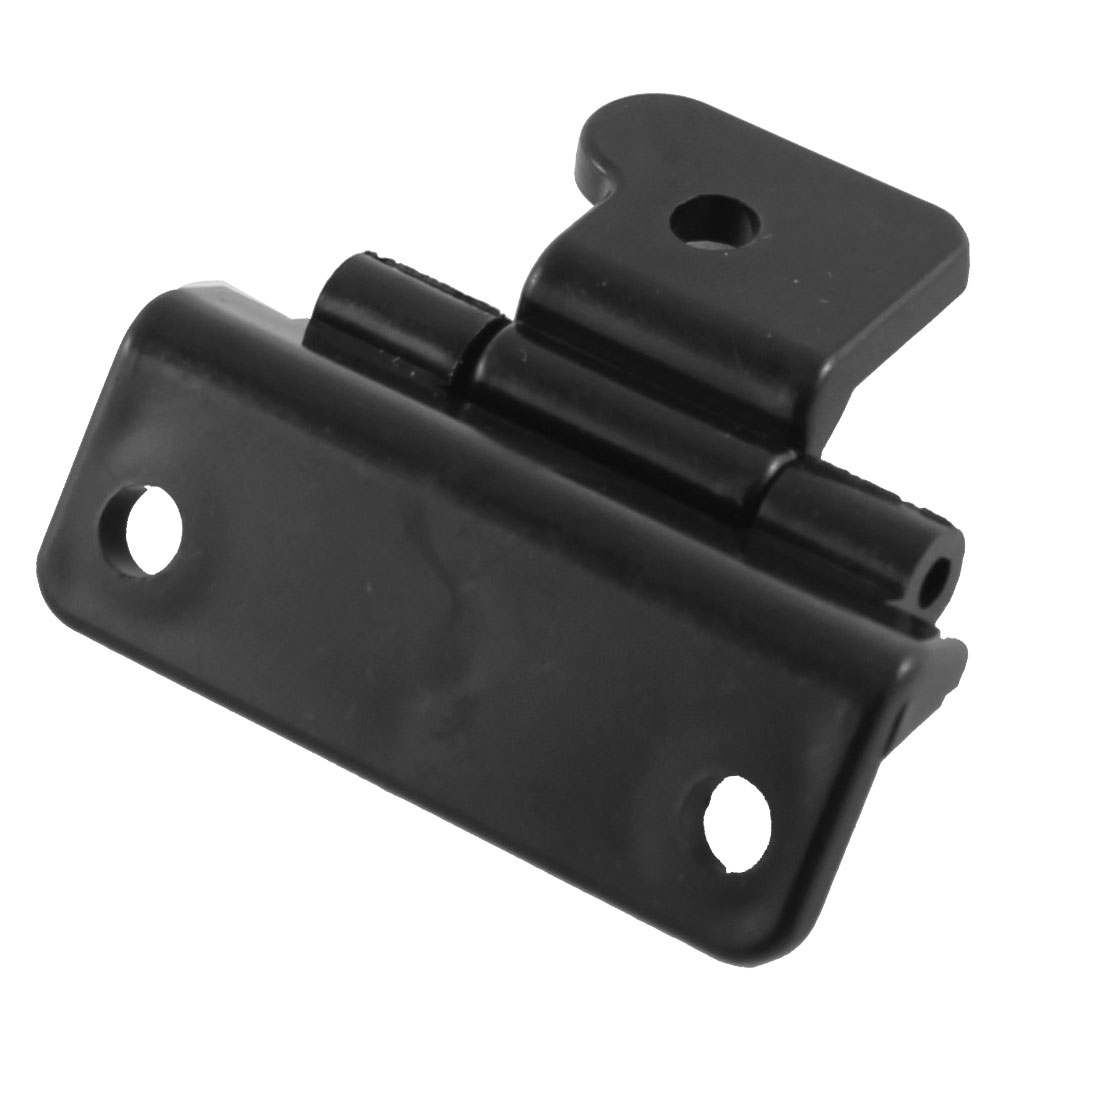 5.5mm Mounting Hole Plastic Black Glove Box Hinge for Car